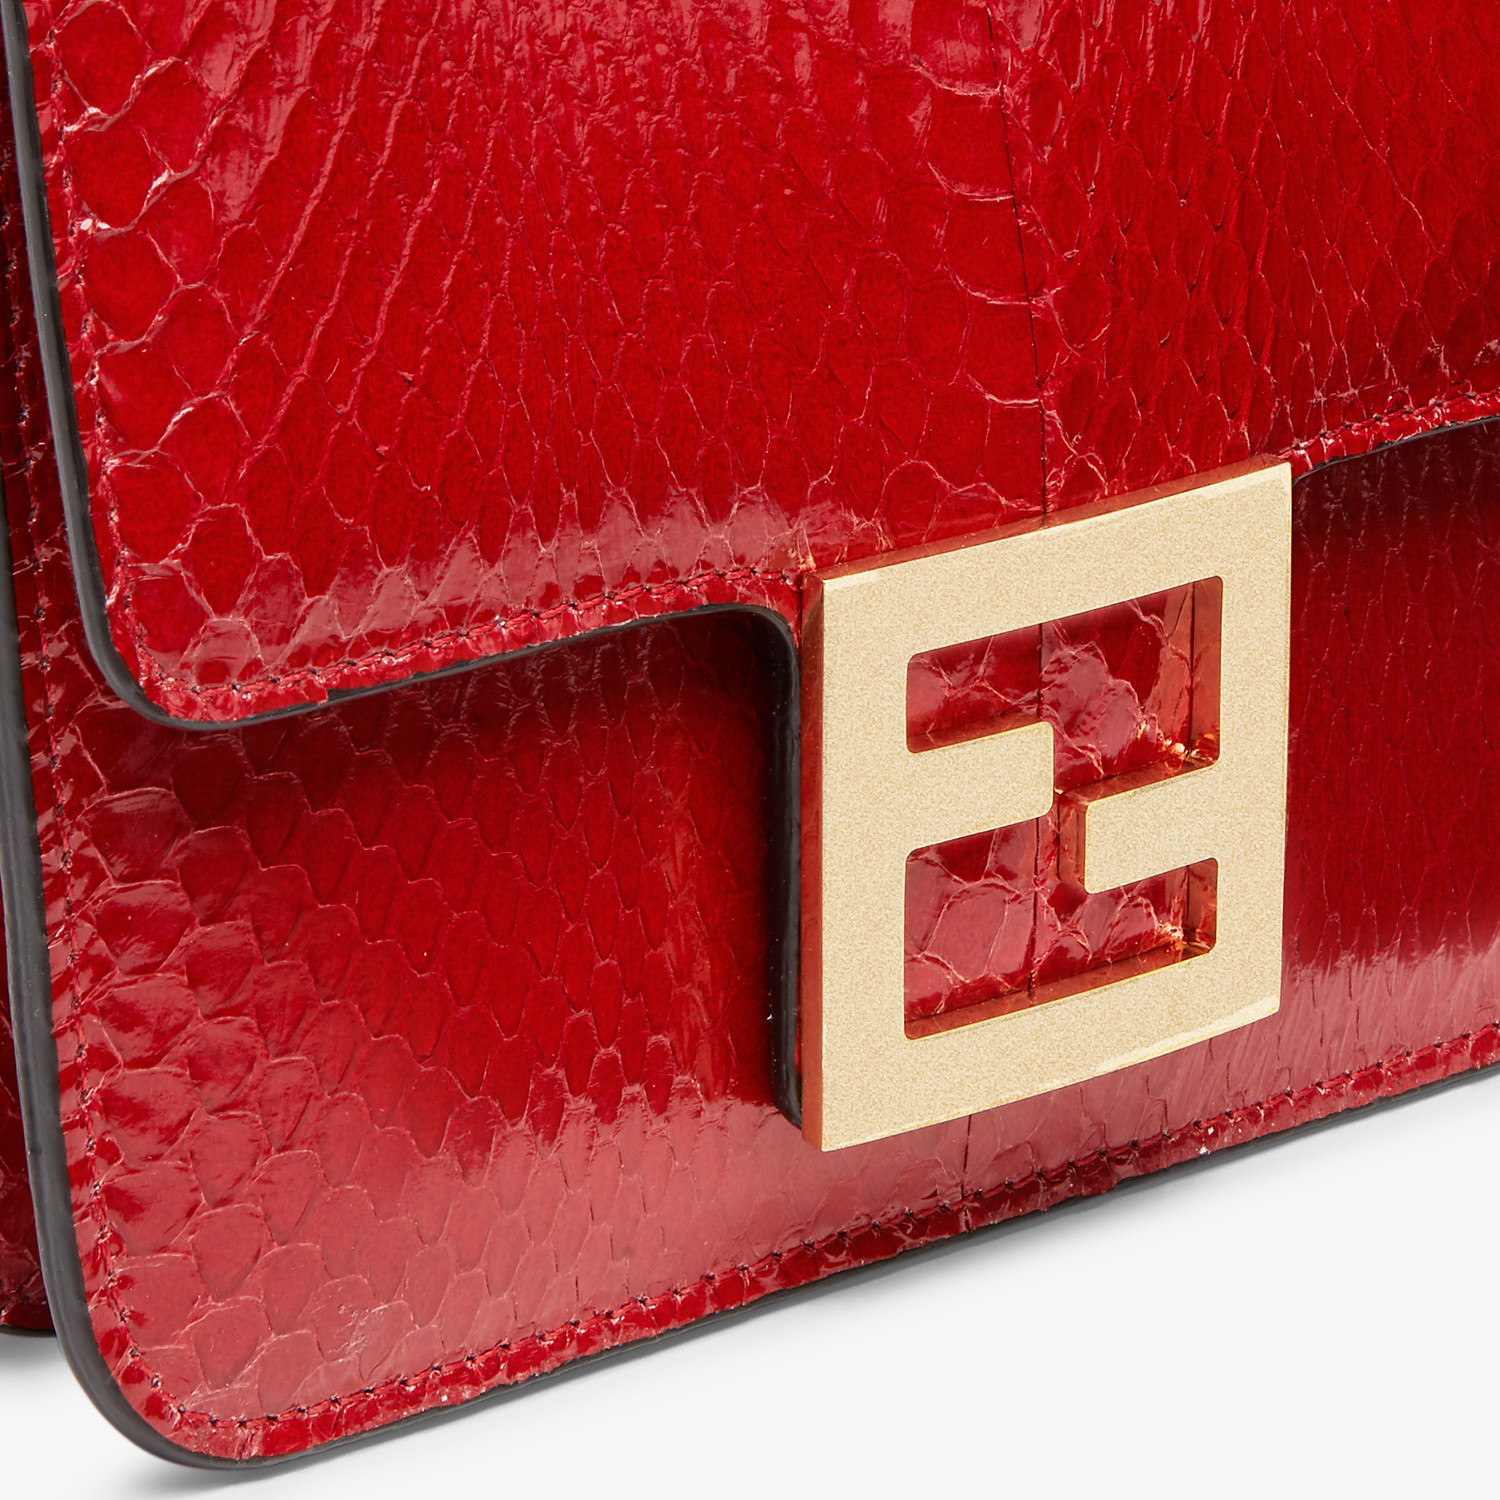 FENDI FENDI FAB - Bag in red elaphe - view 5 detail